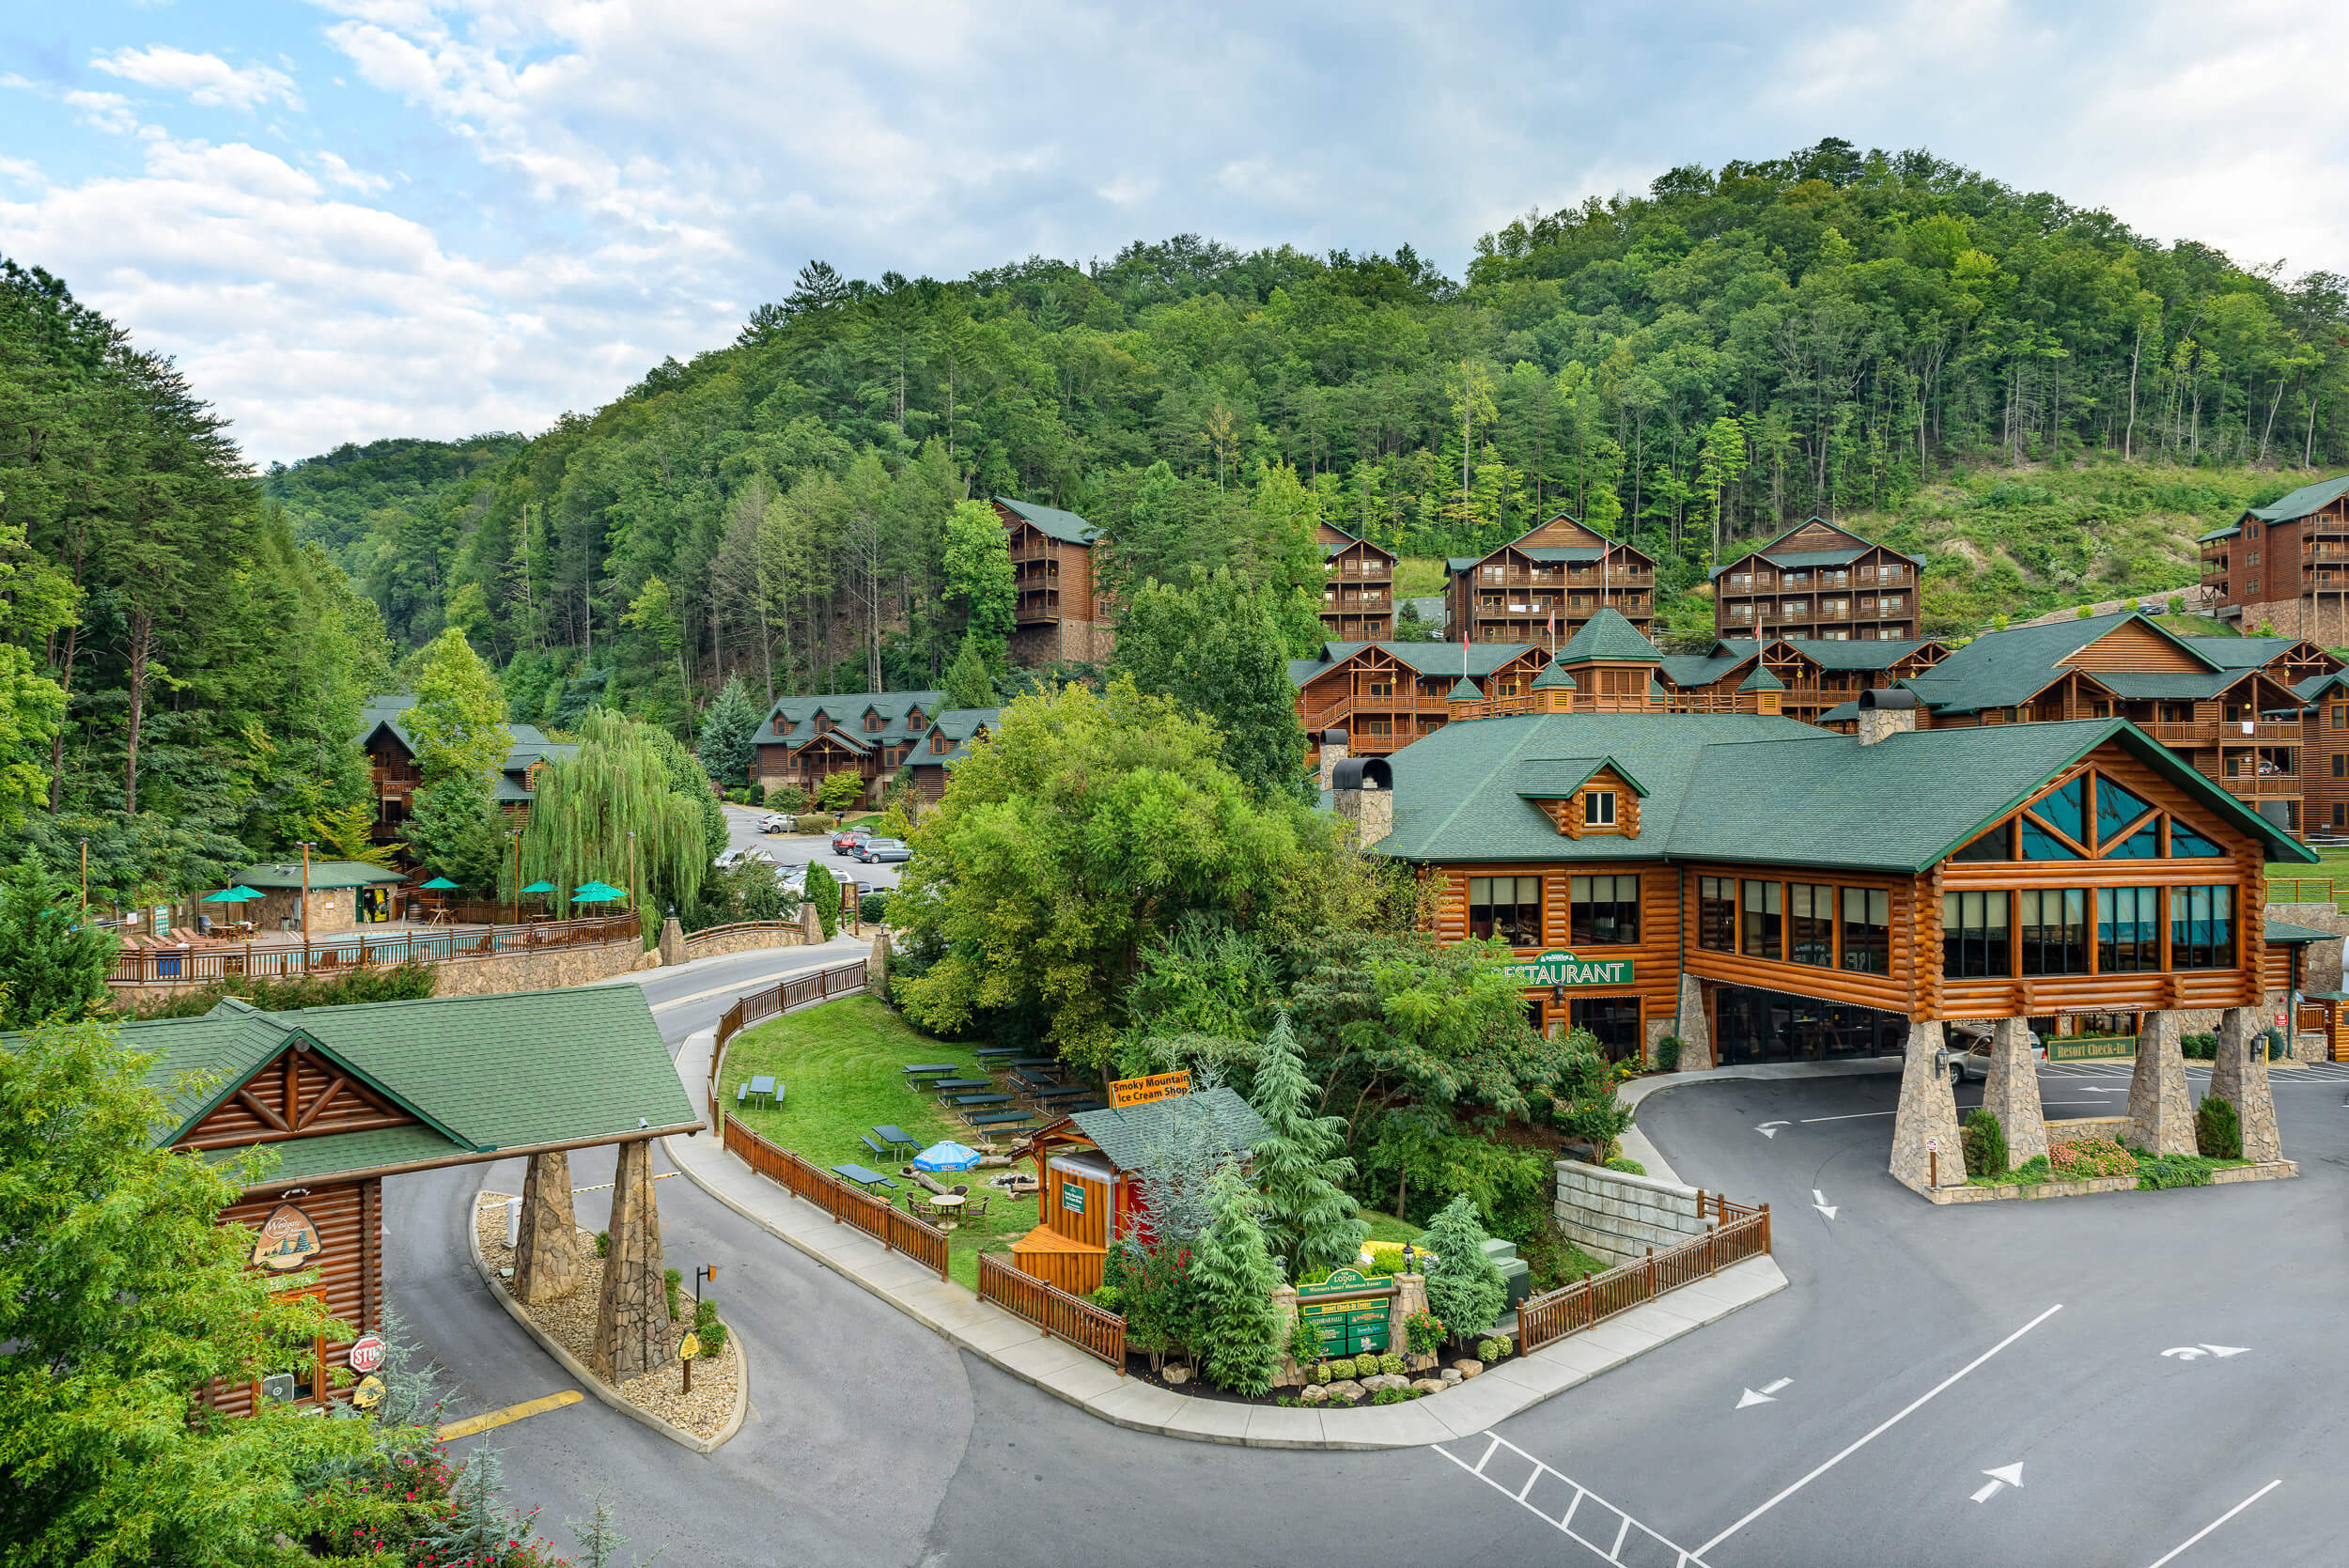 resorts in pigeon forge, tn   tennessee resorts   visit westgate